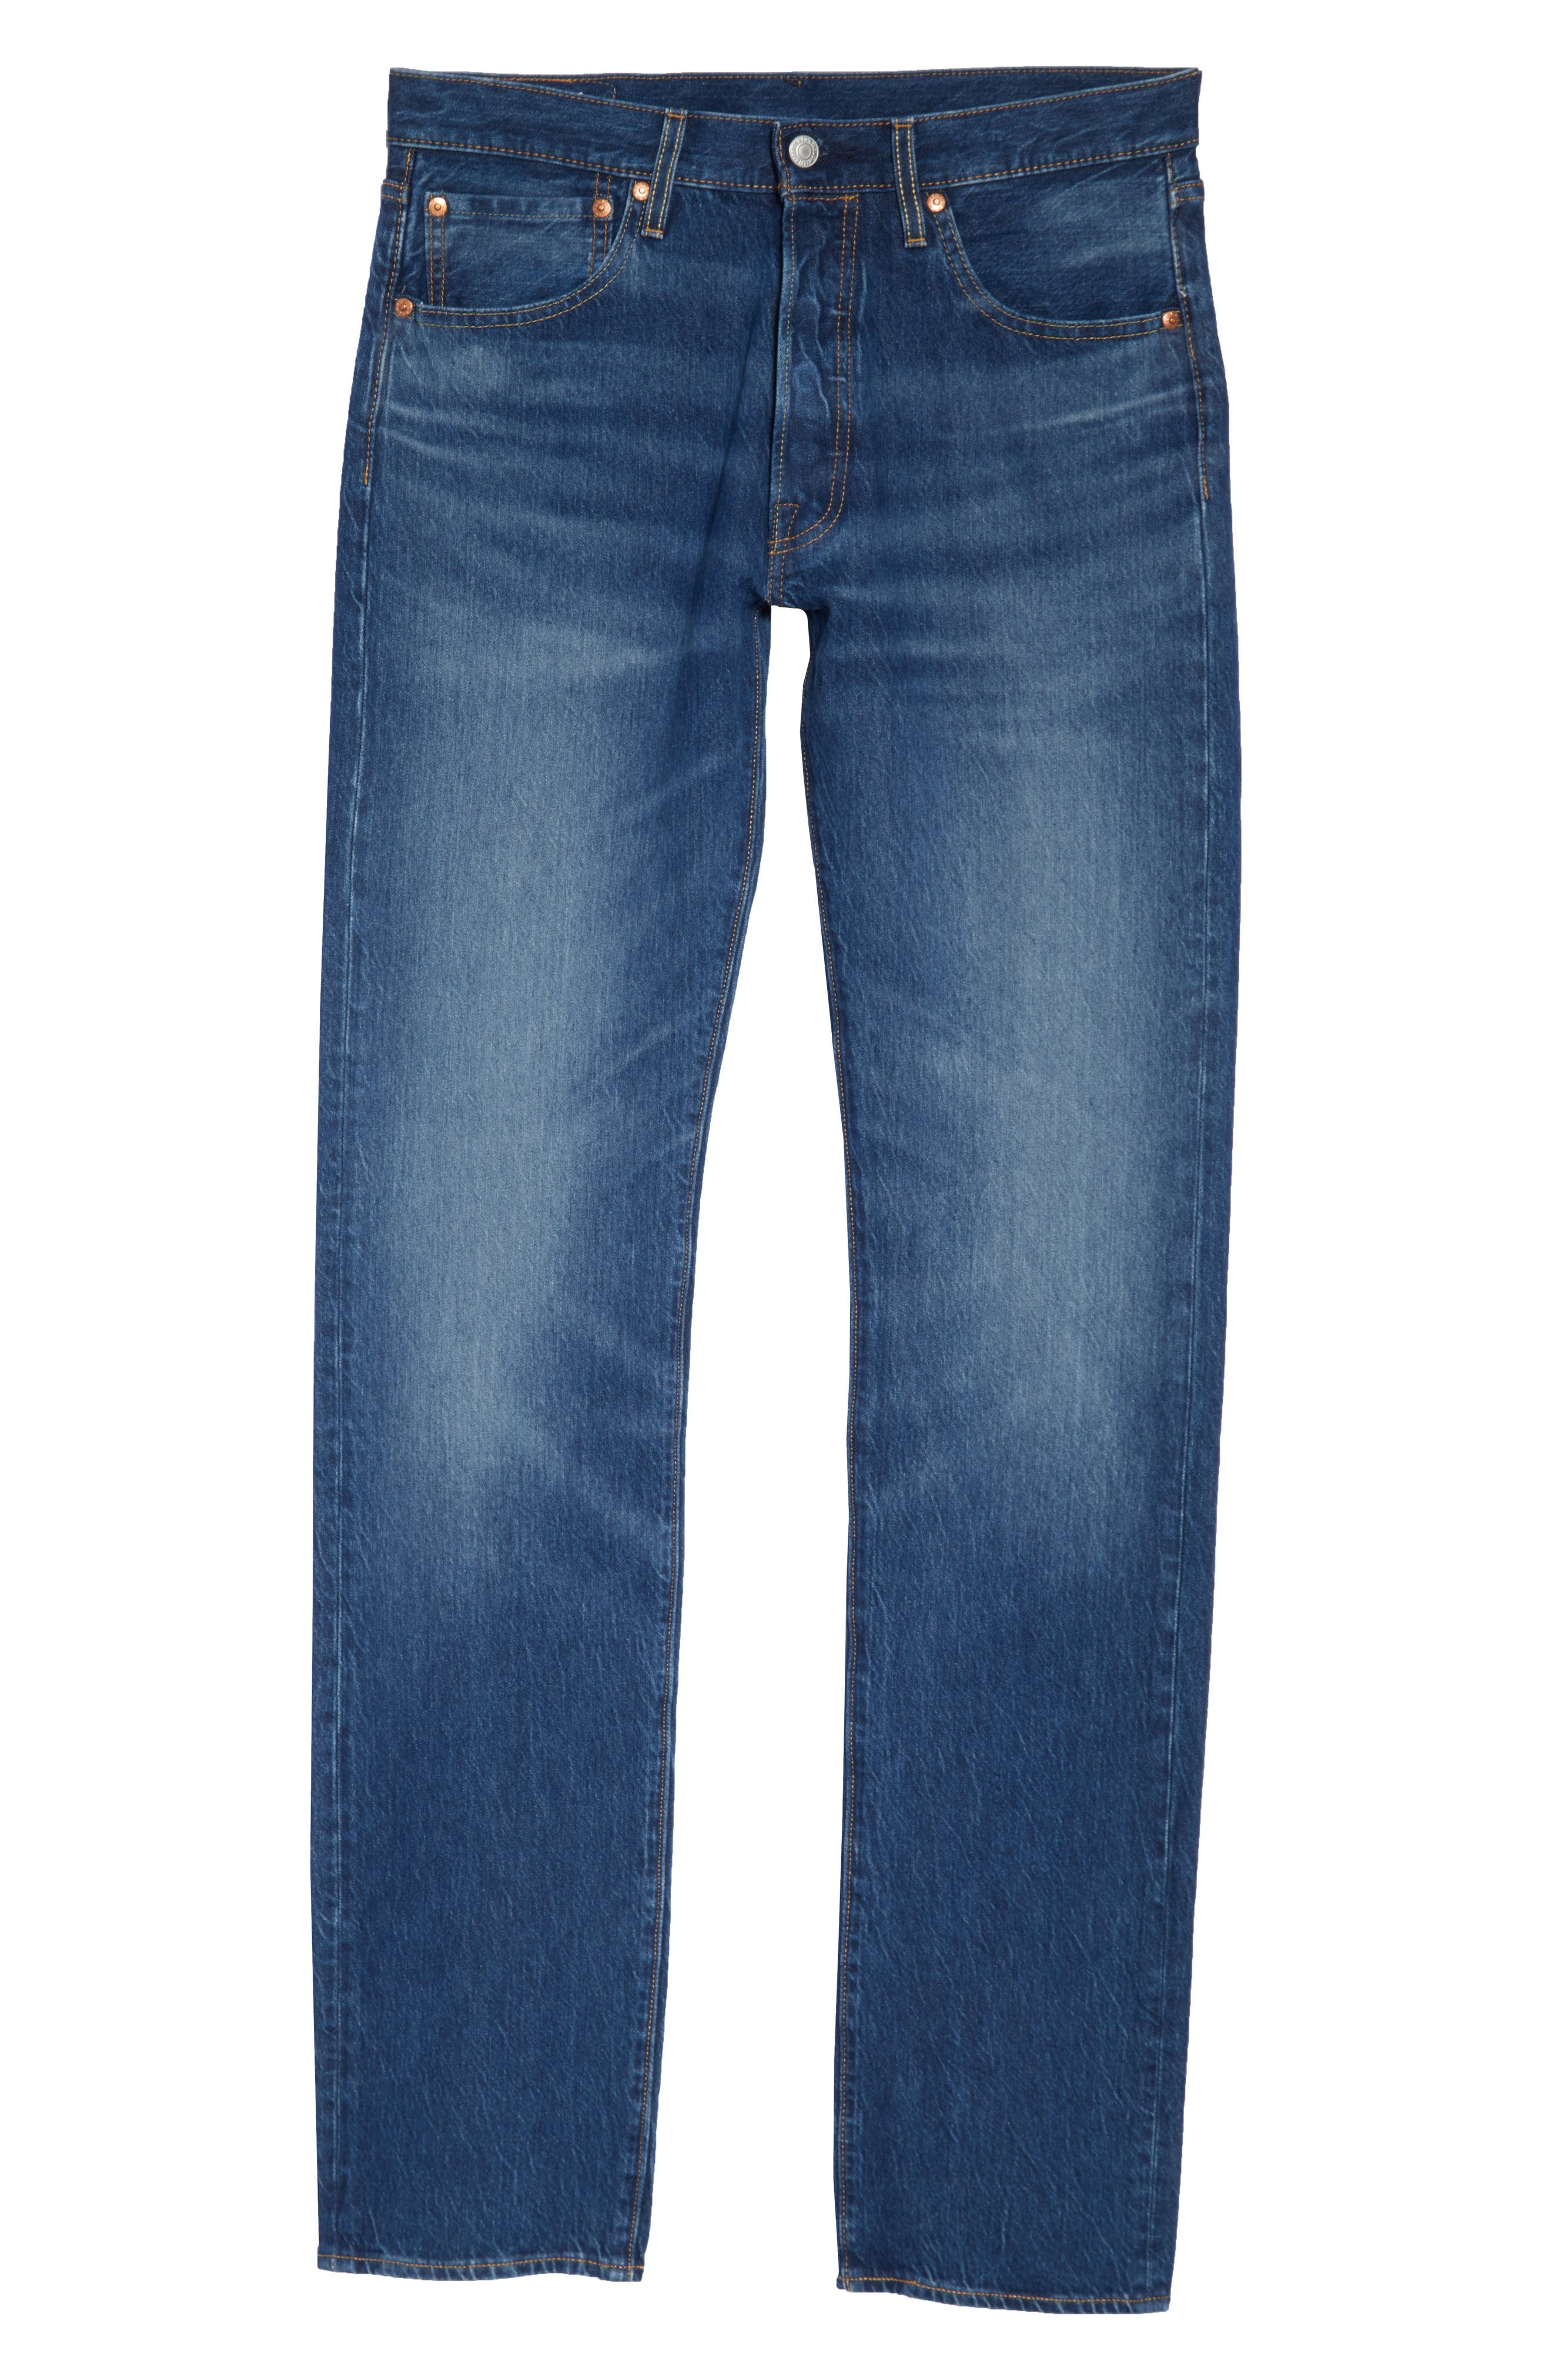 LEVI'S<SUP>®</SUP>,                             501<sup>®</sup> Straight Leg Jeans,                             Alternate thumbnail 4, color,                             DAIRY WHIPPED